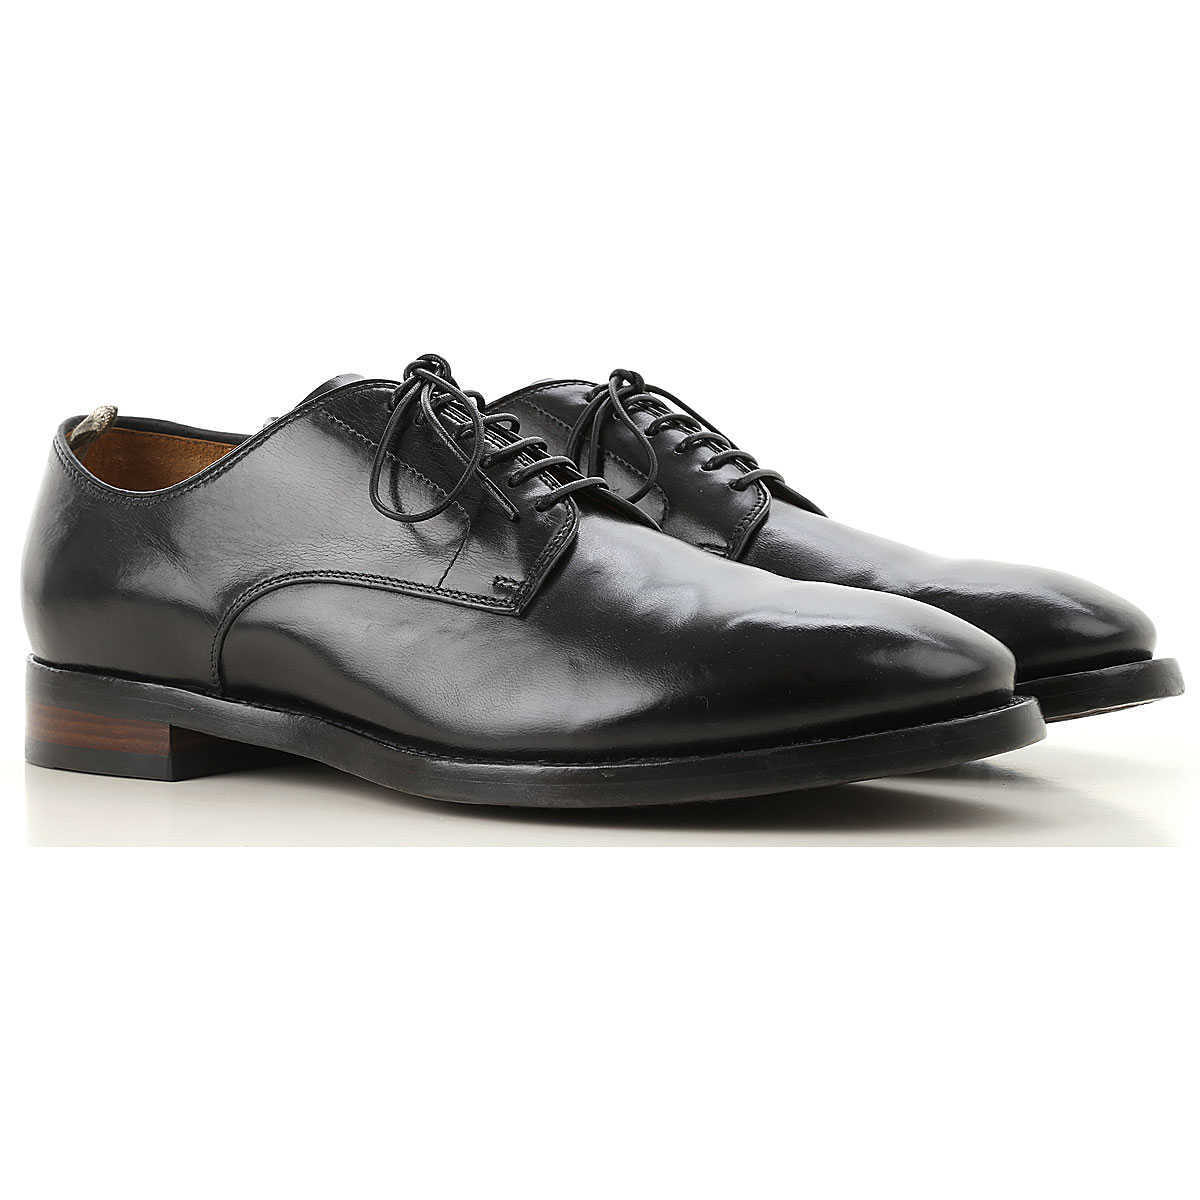 Officine Creative Lace Up Shoes for Men Oxfords 8 9 Derbies and Brogues On Sale UK - GOOFASH